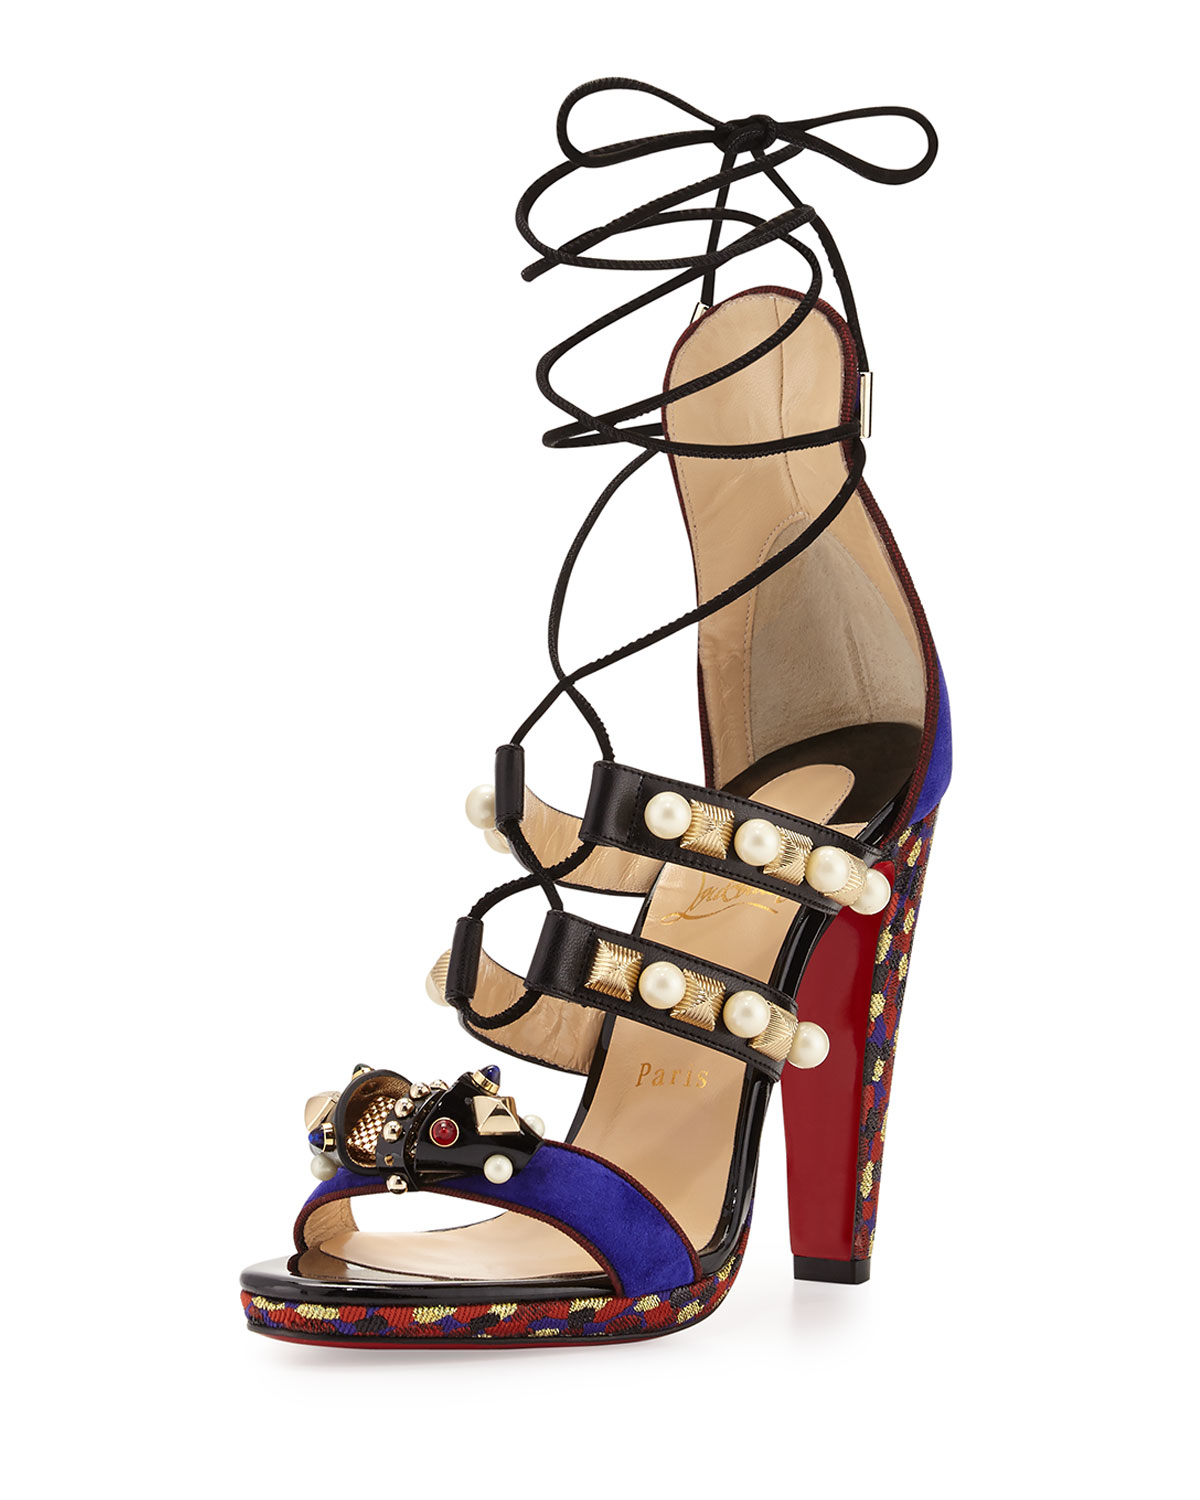 1a3a1be71b2 Christian Louboutin Tudor Lace-up Red Sole Sandal - Lyst